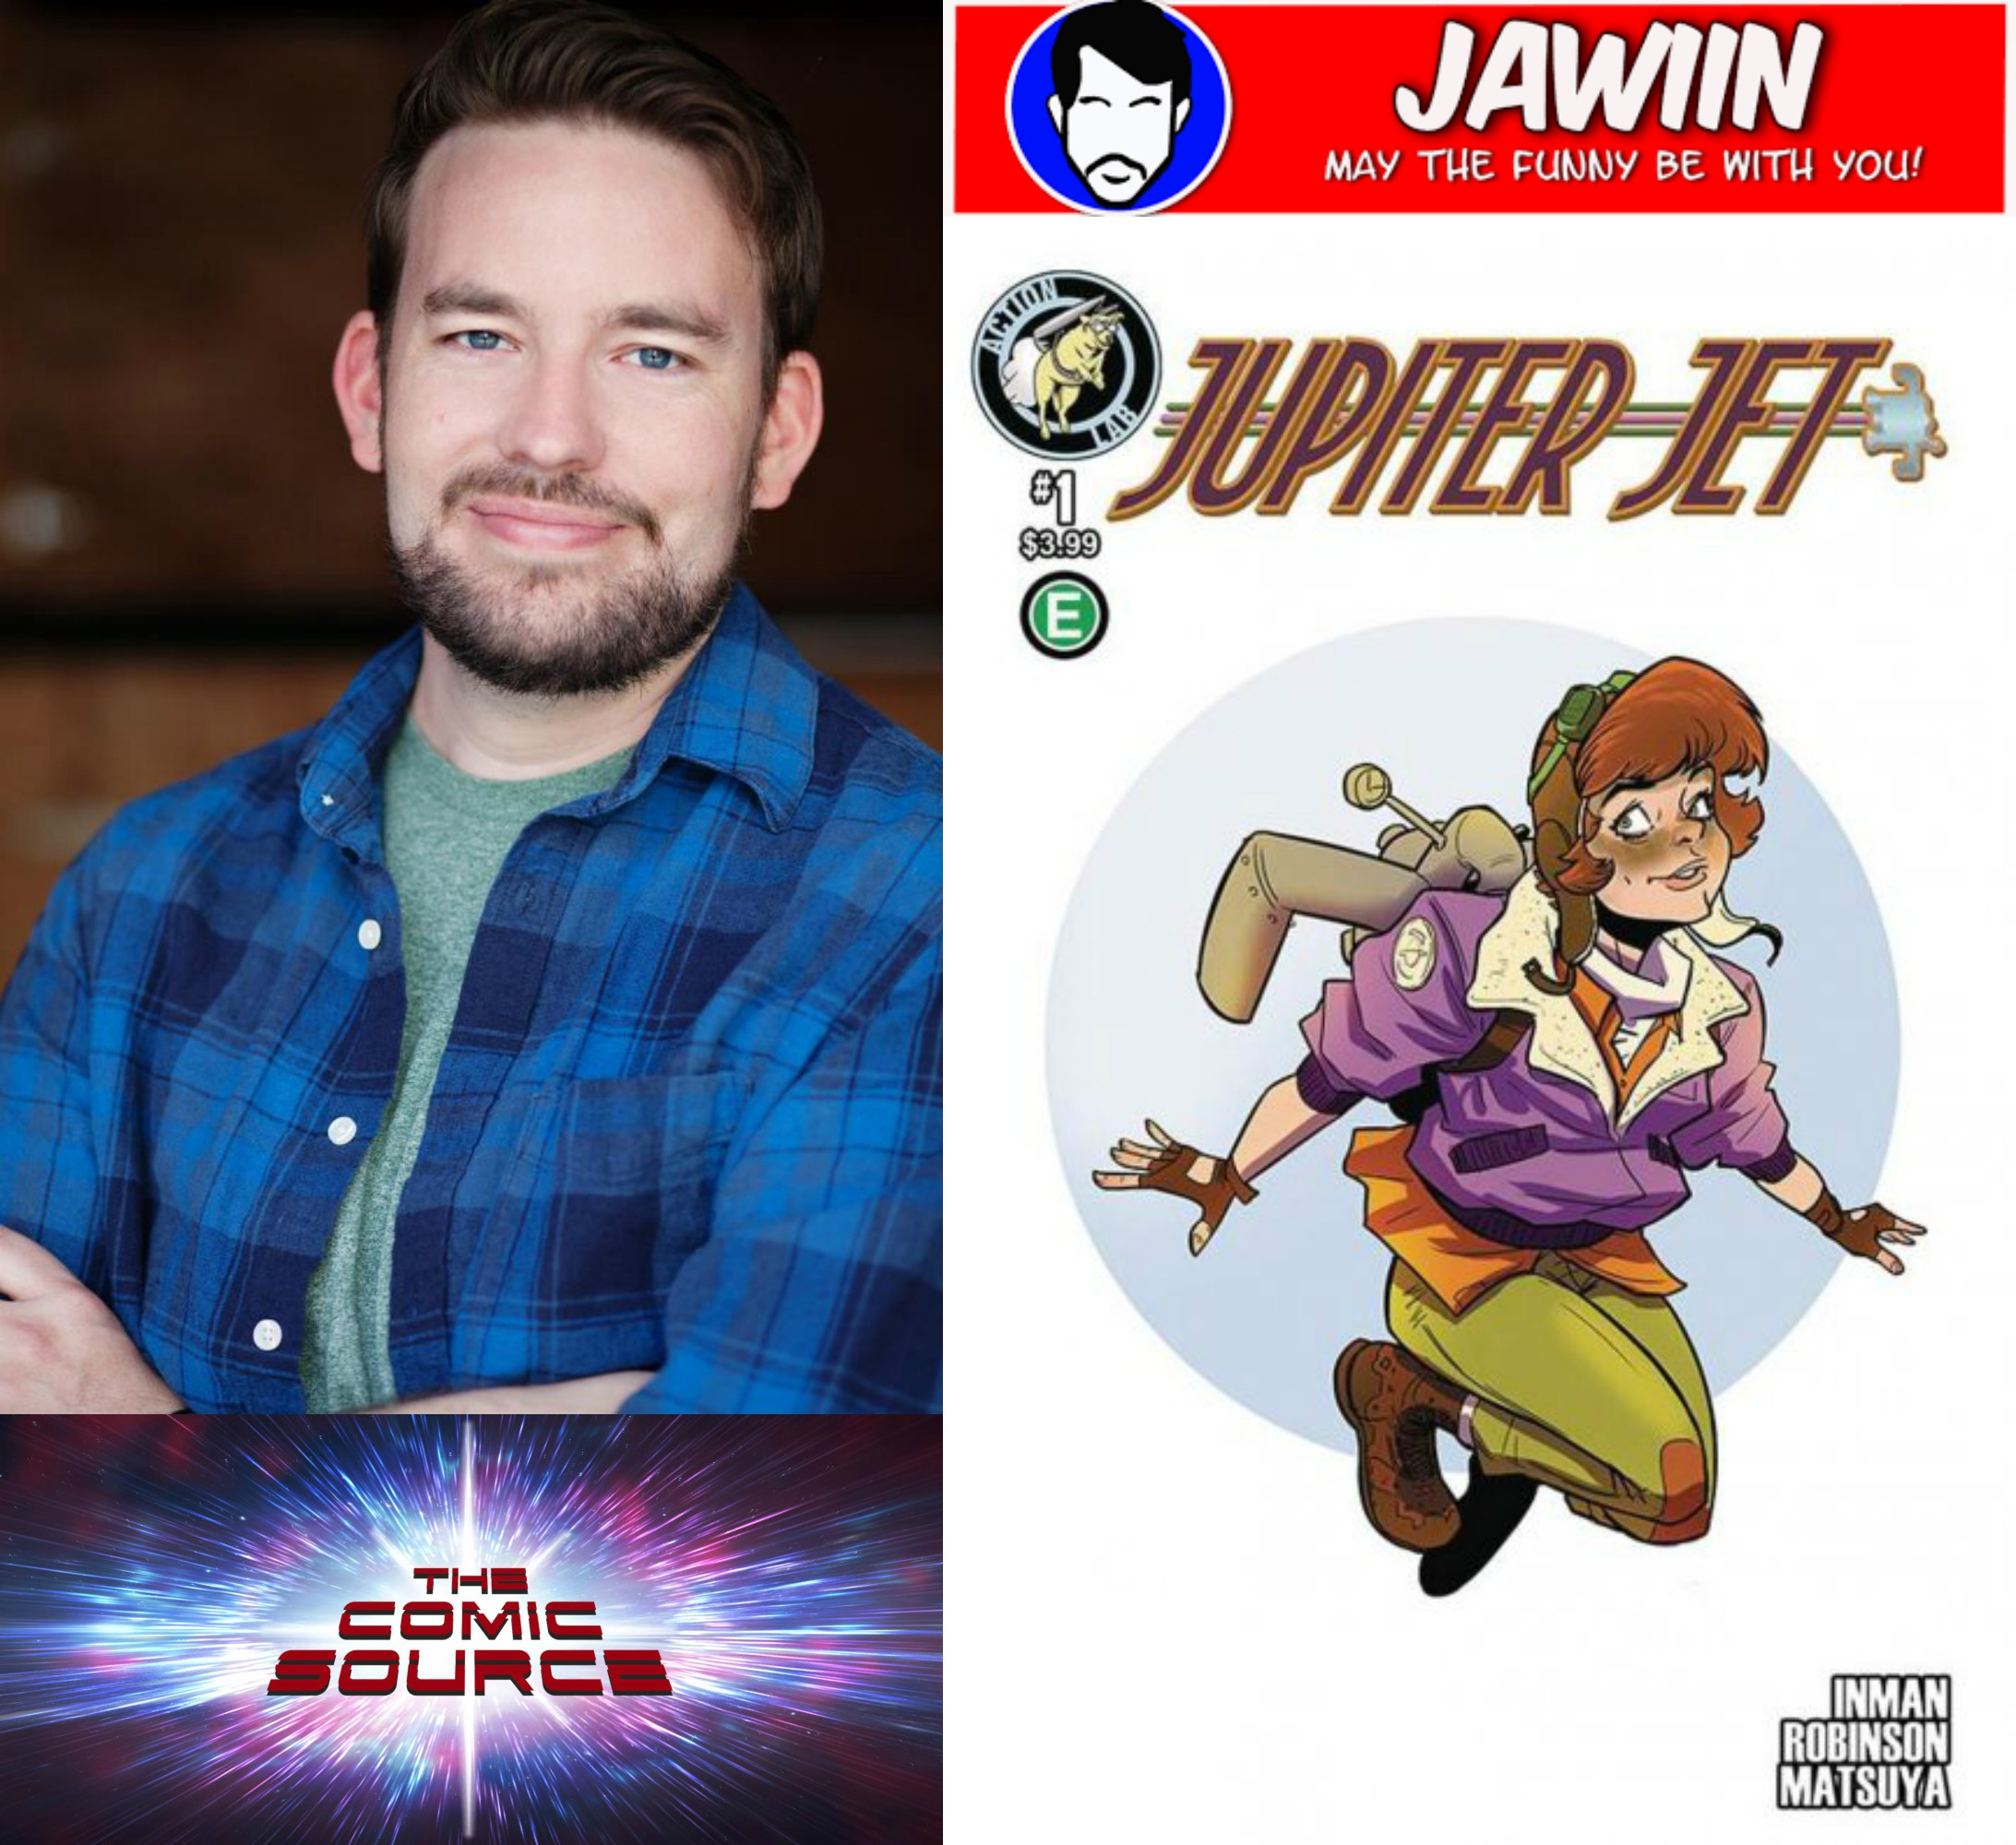 The Comic Source Podcast Episode 296 – Spotlight on Jupiter Jet with Jason Inman